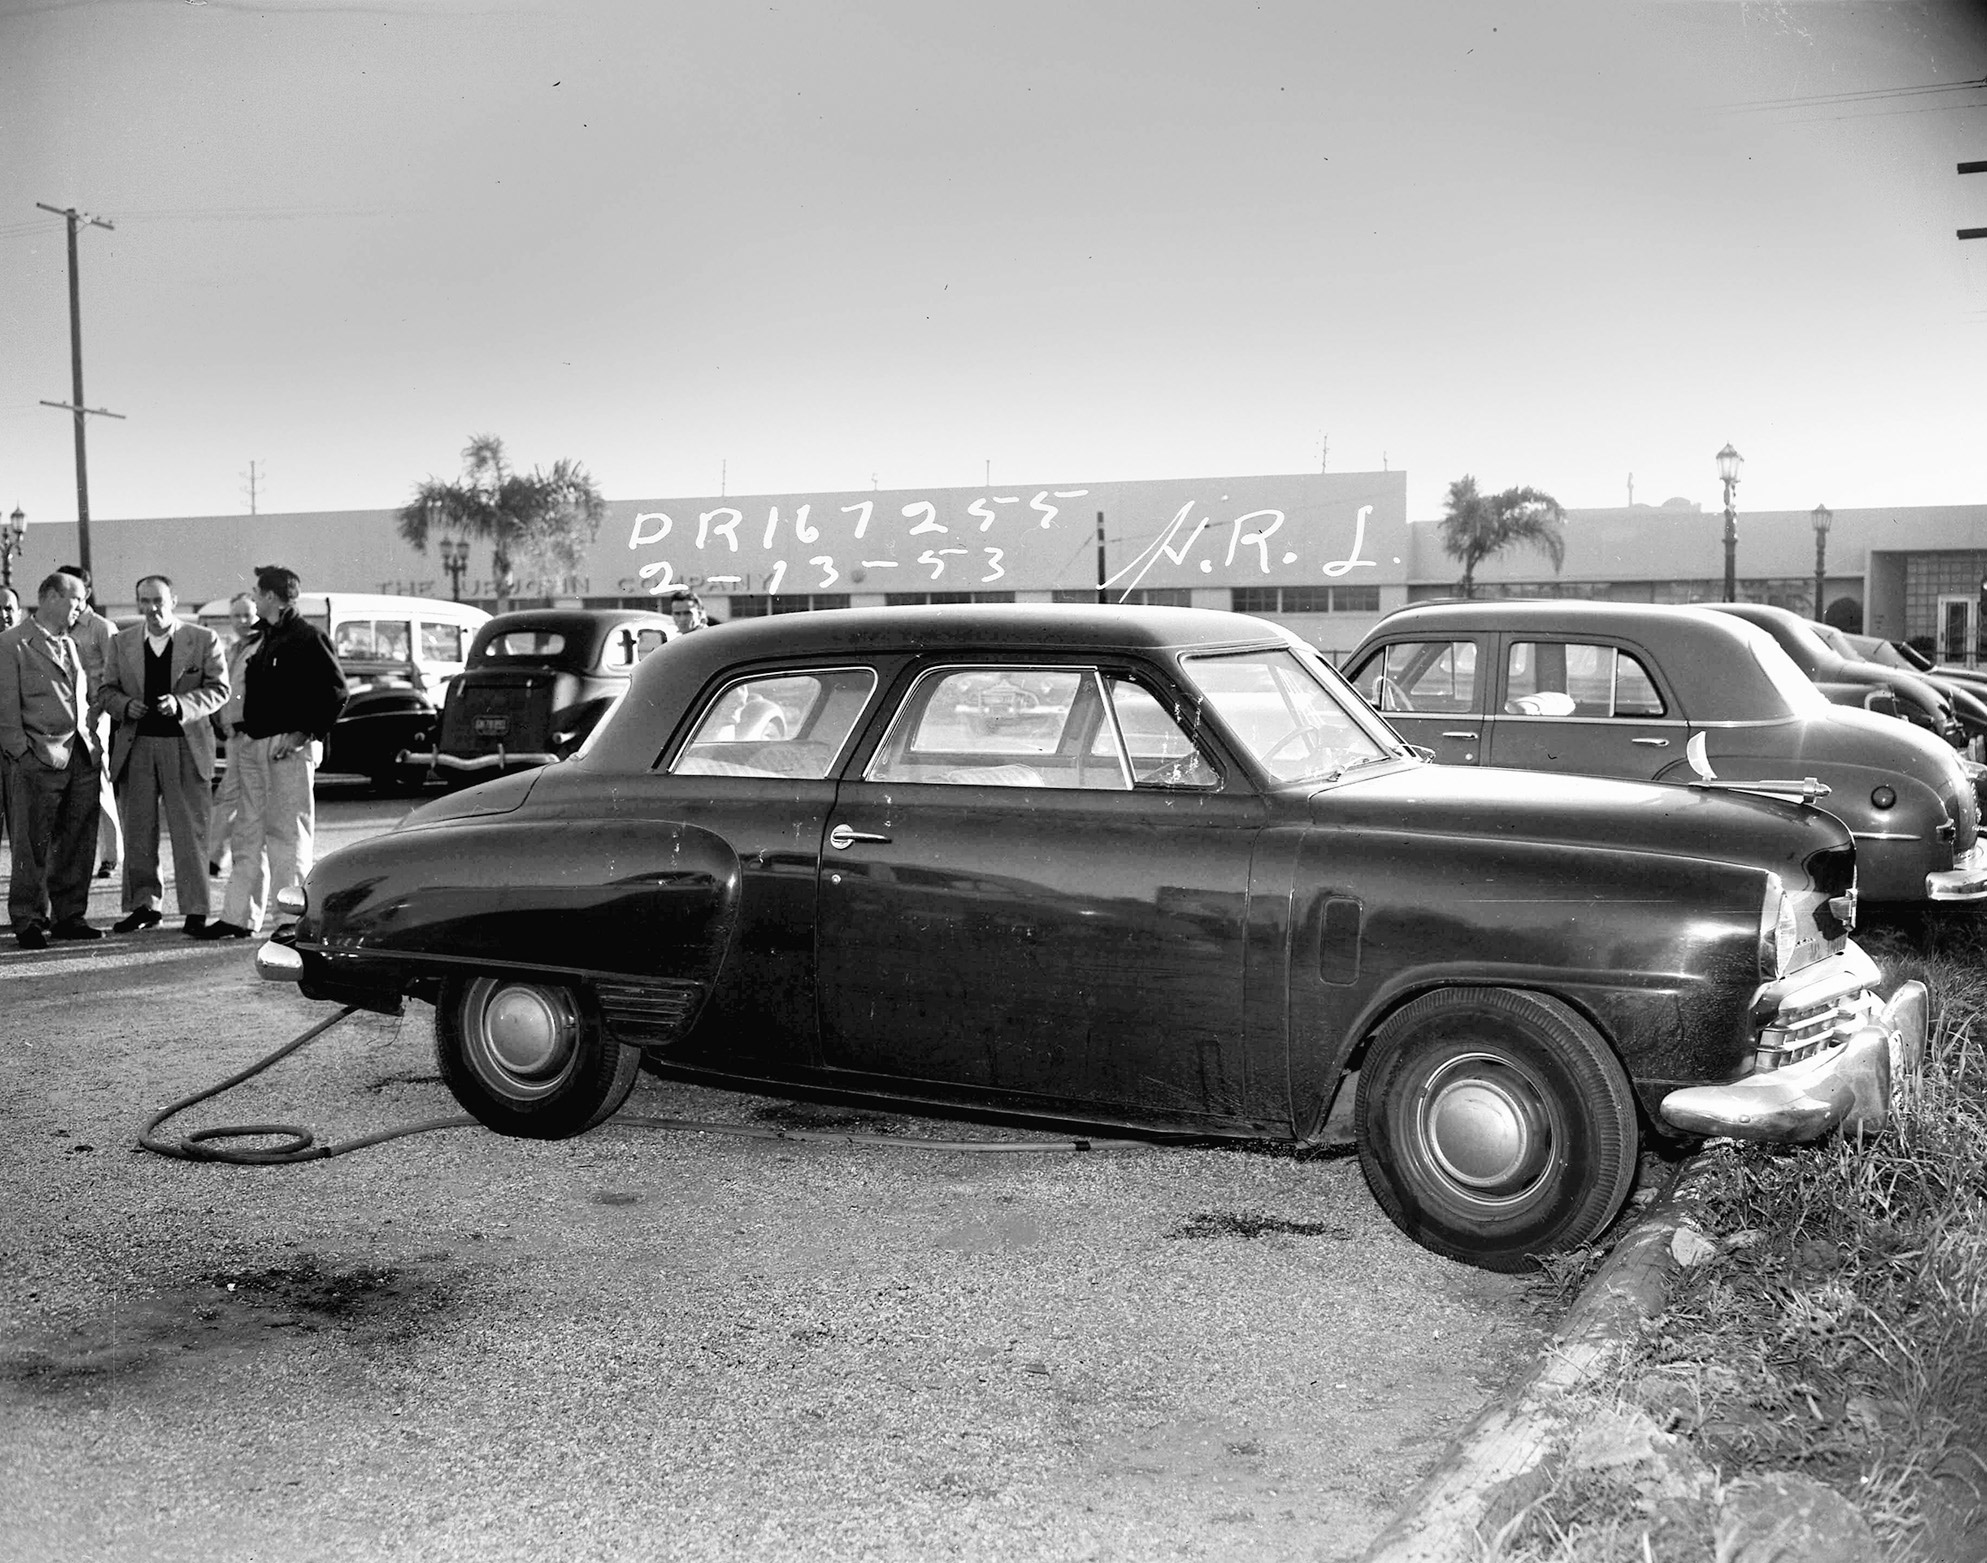 Dead body found in parked car with the motor still running early one February morning on Friday the 13, 1953.